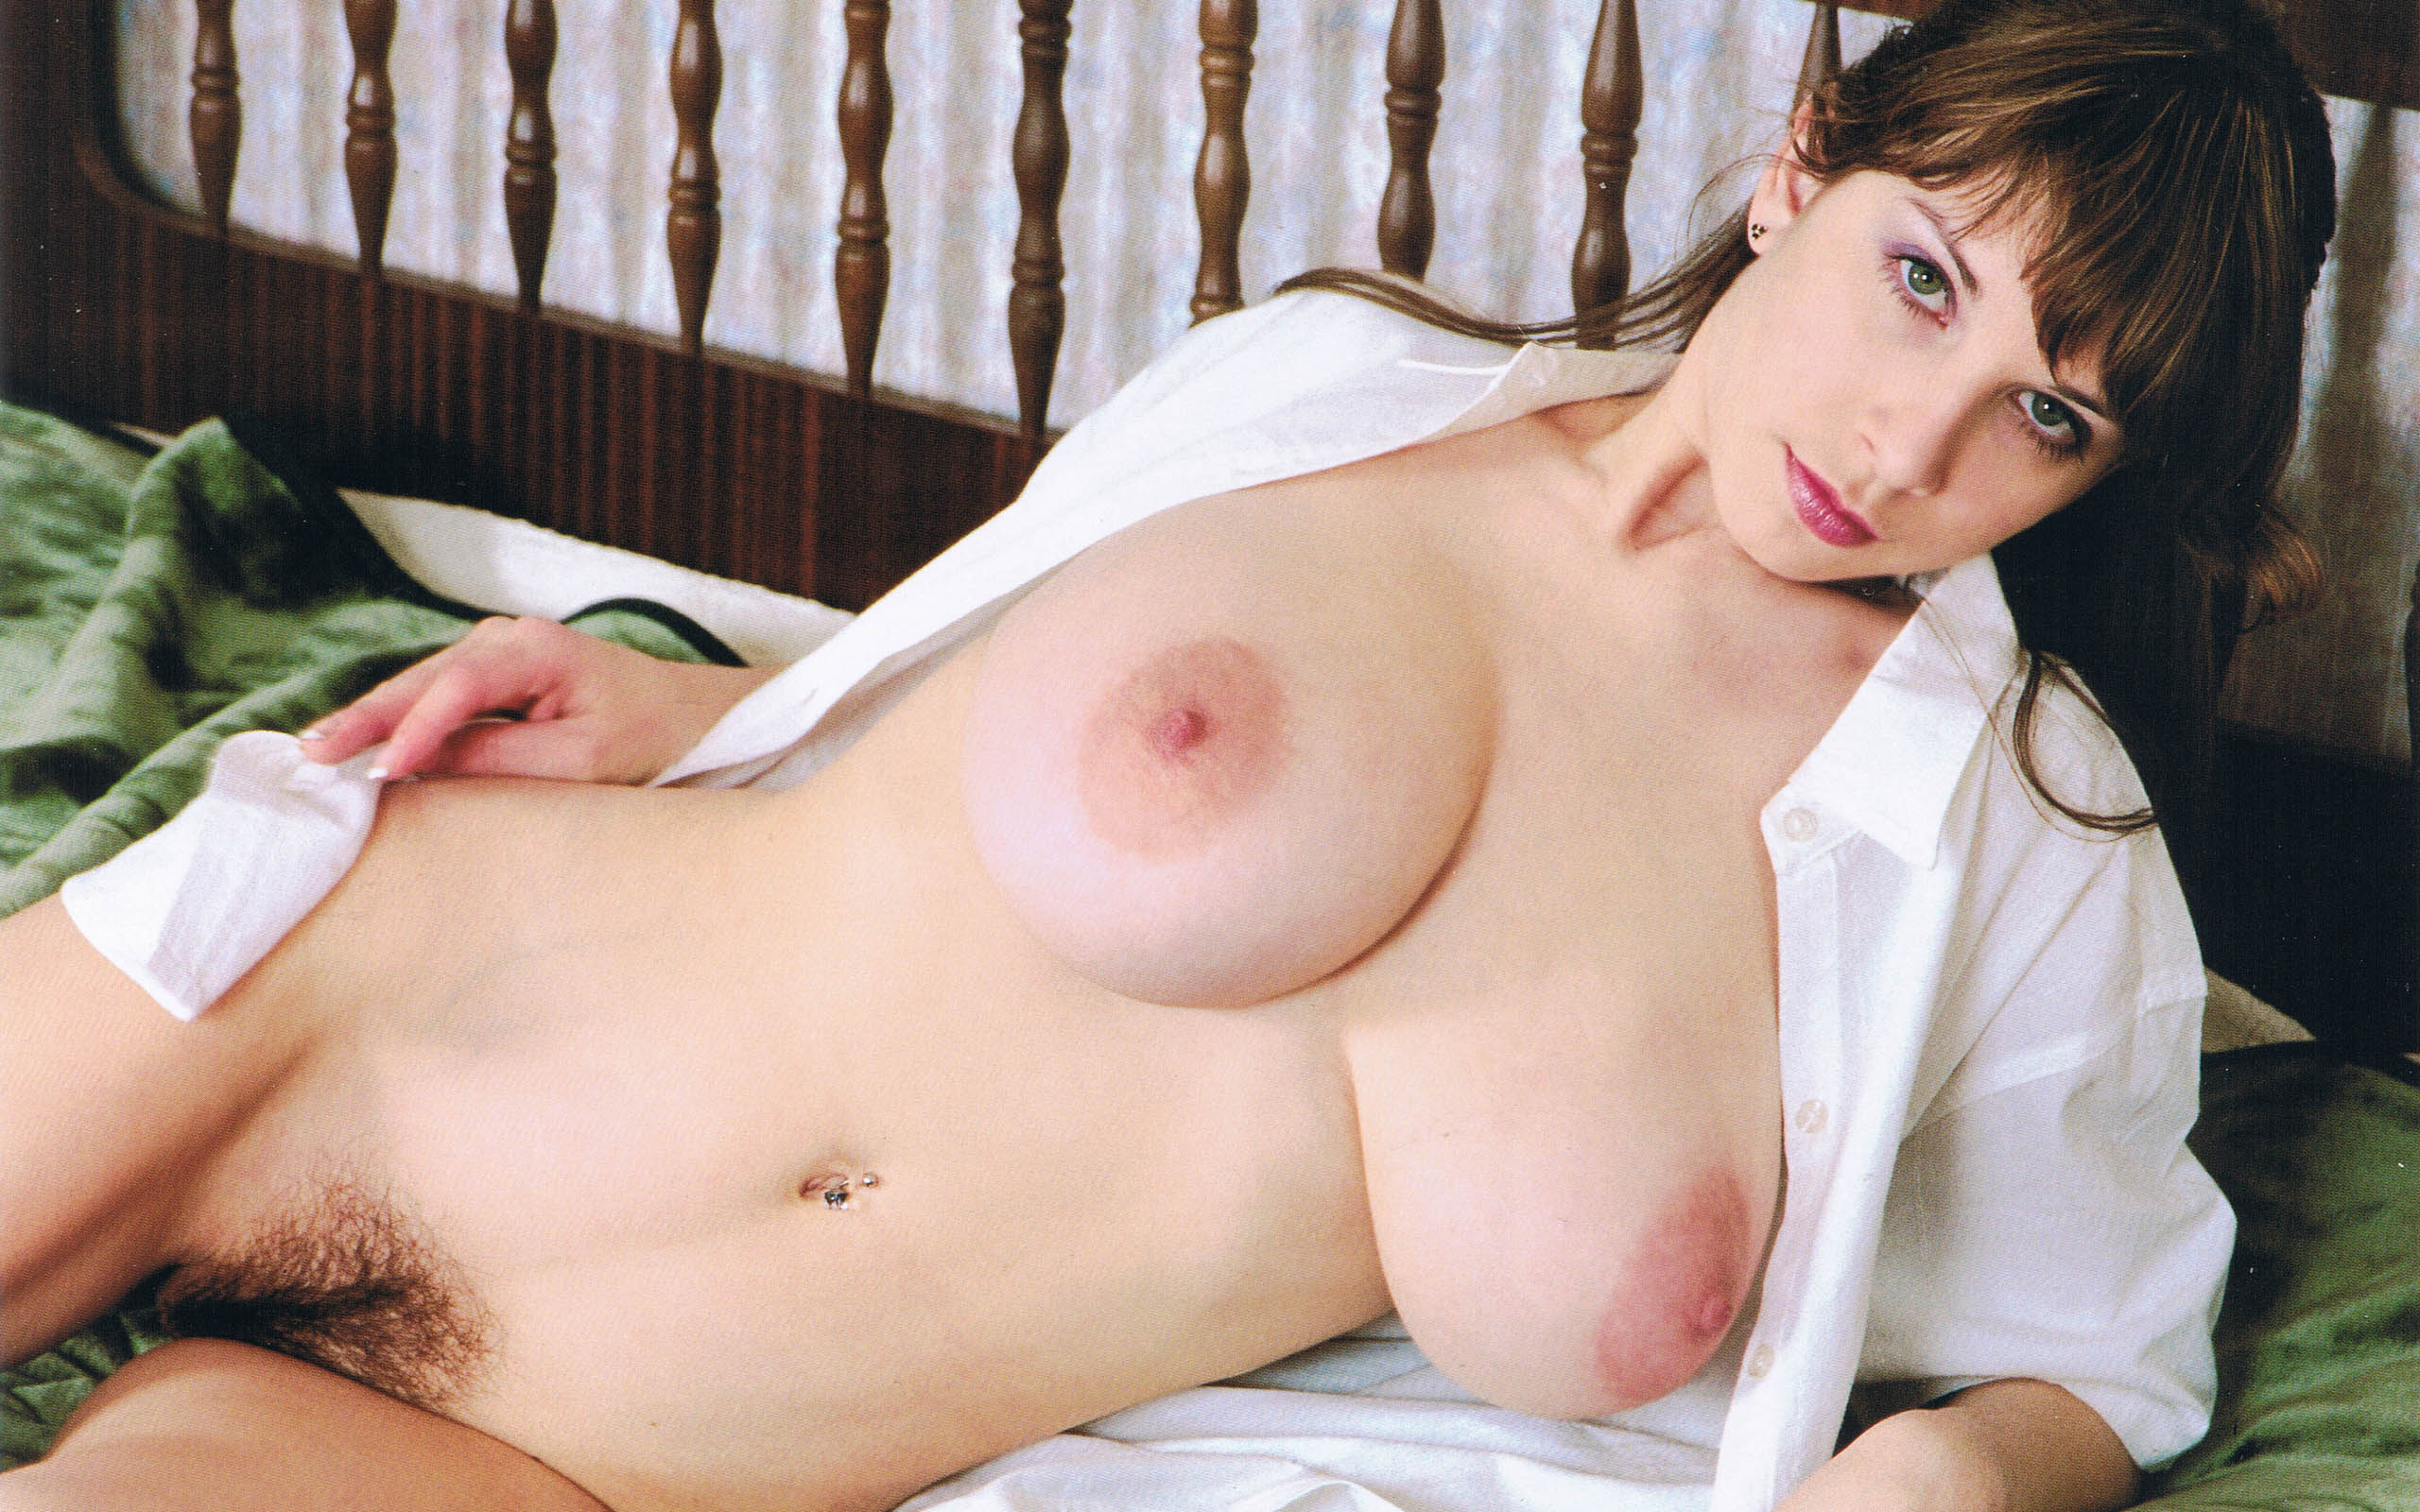 ... Babe Eva Amazing Boobs Young Inviting Kari Alison Angel Sweet Ass: hotnudesearch.com/yulia/yulia-nova/31wrx5.html